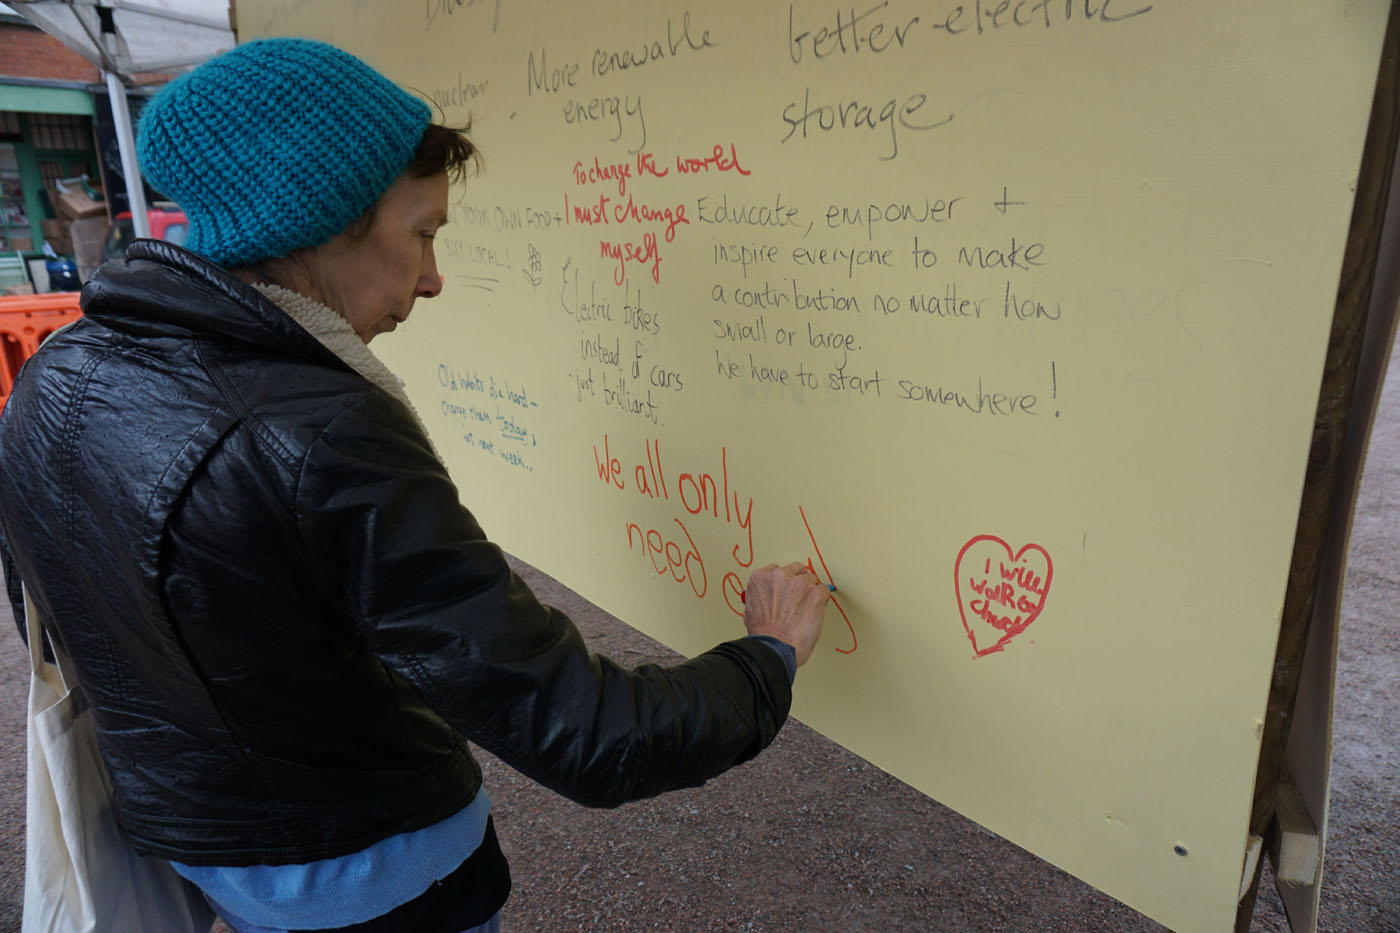 Photograph of a man writing on the graffiti board